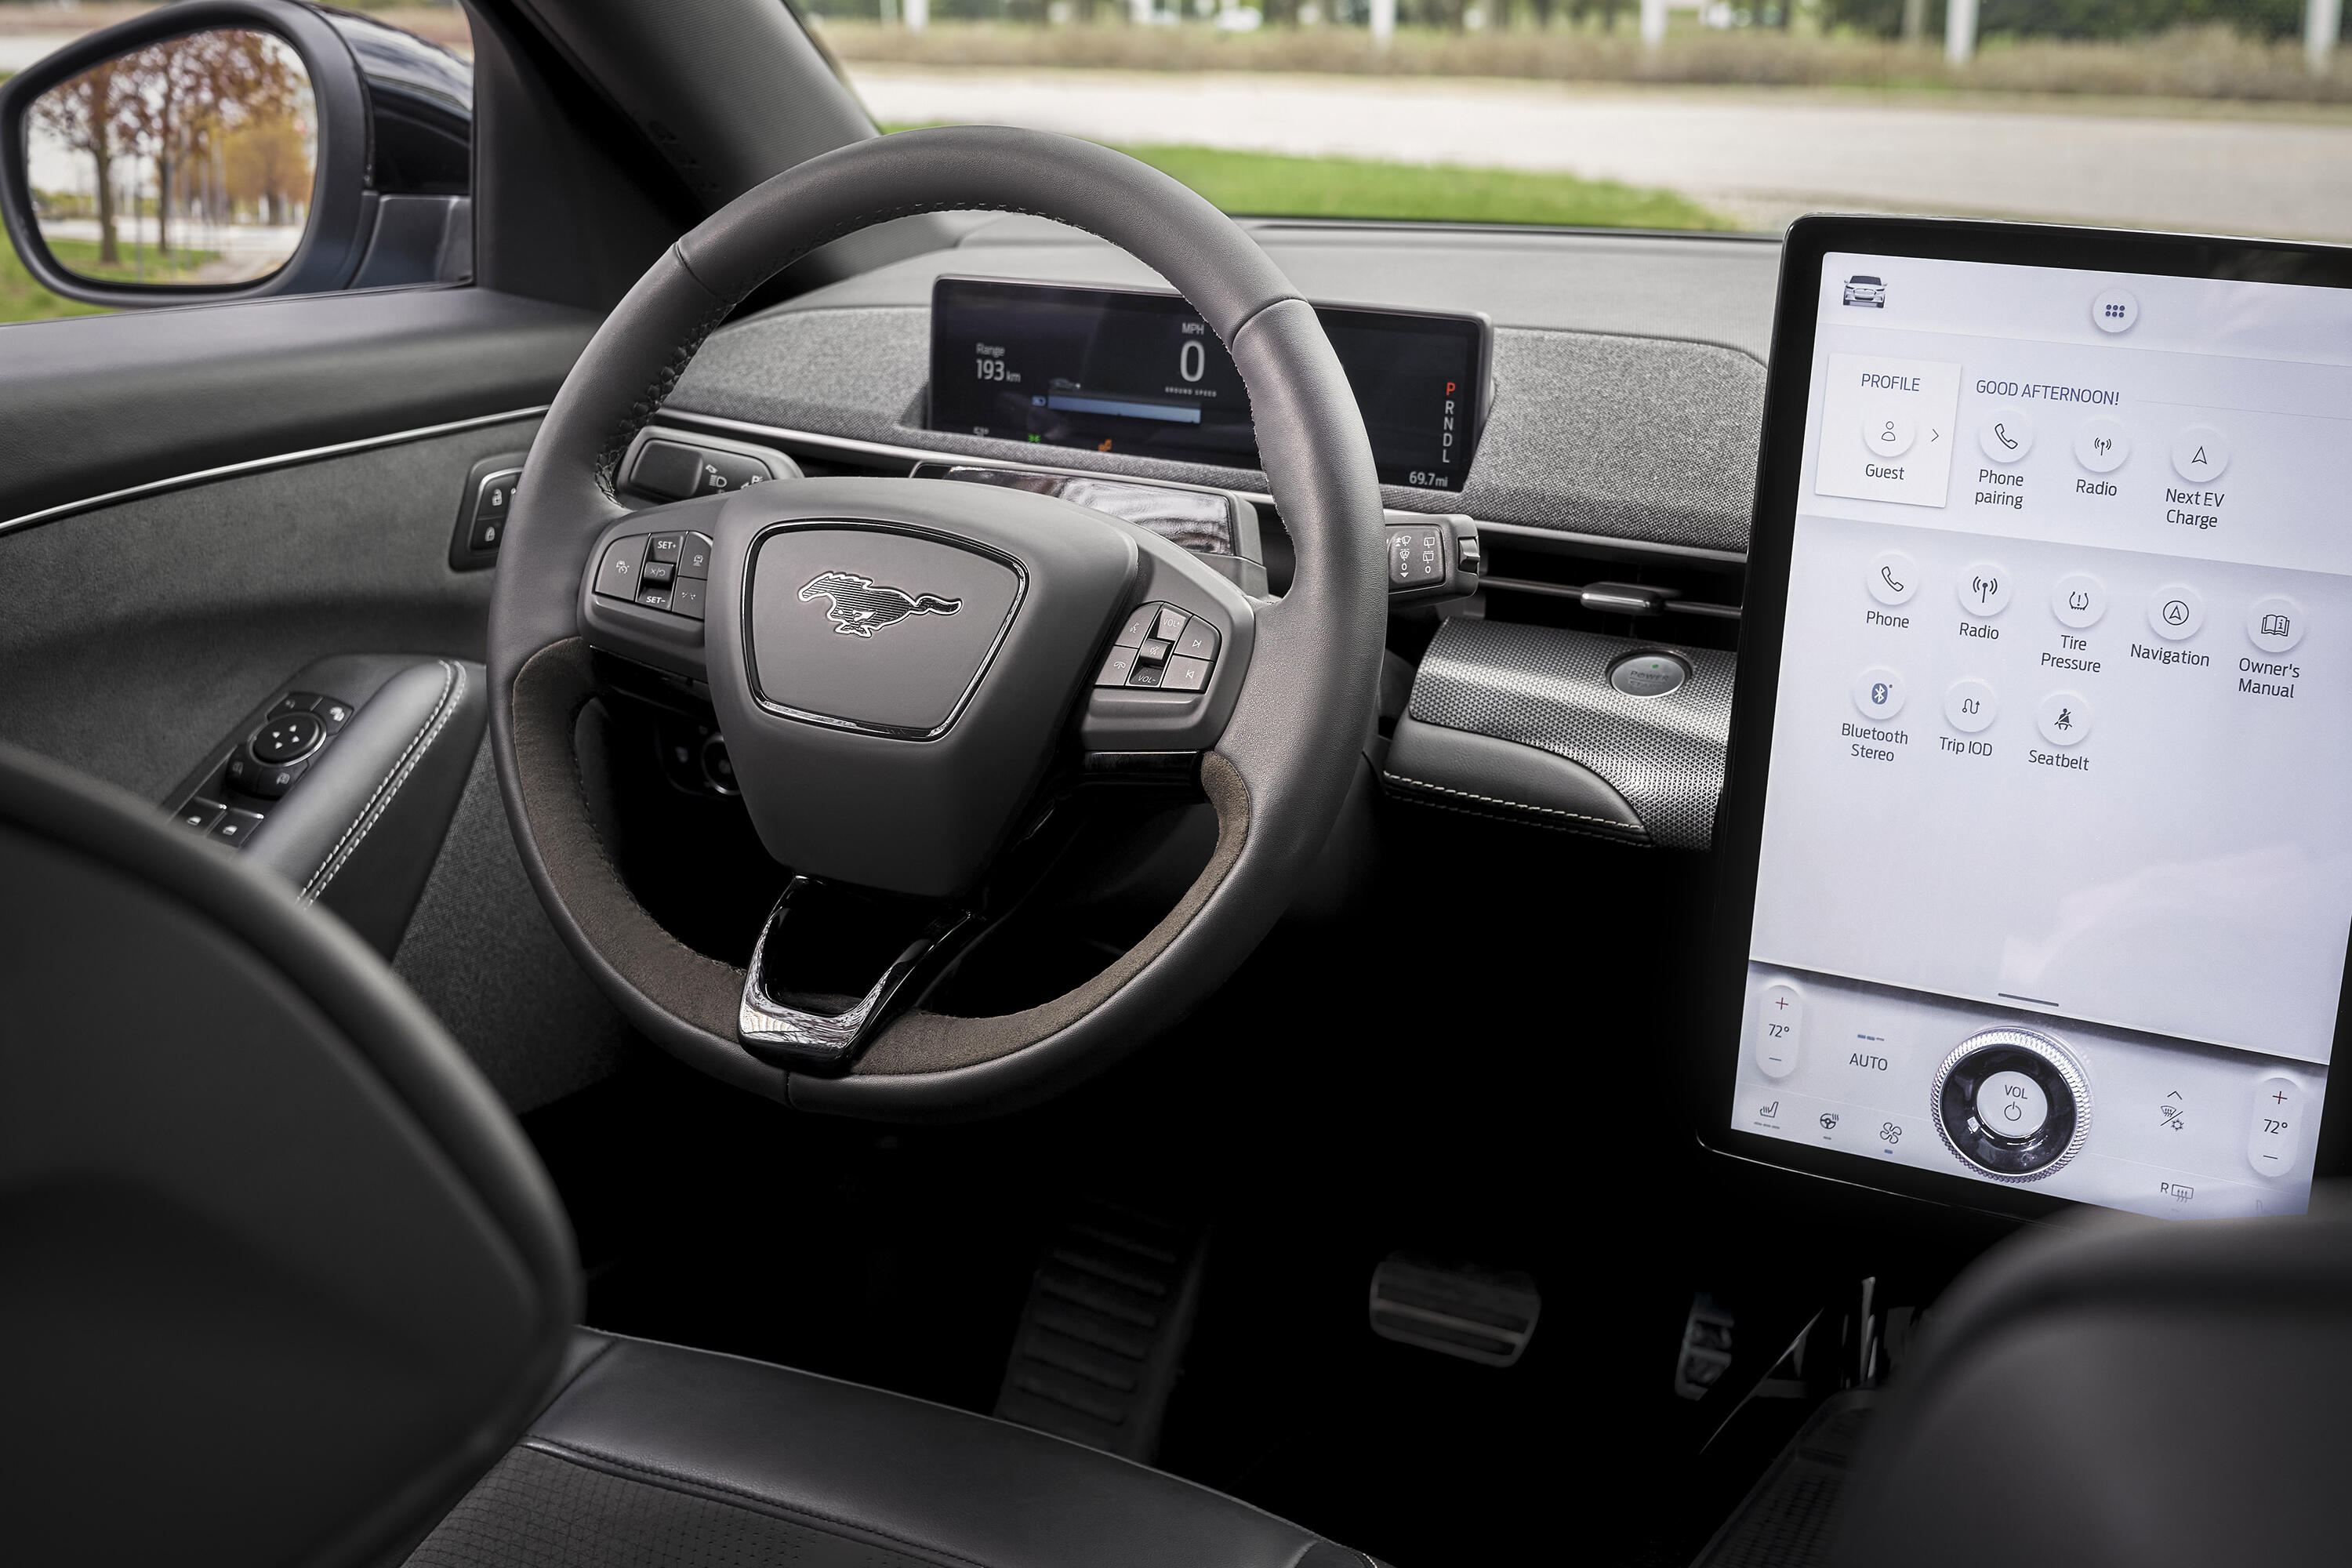 2021 Ford Mustang Mach-E GT dashboard and infotainment